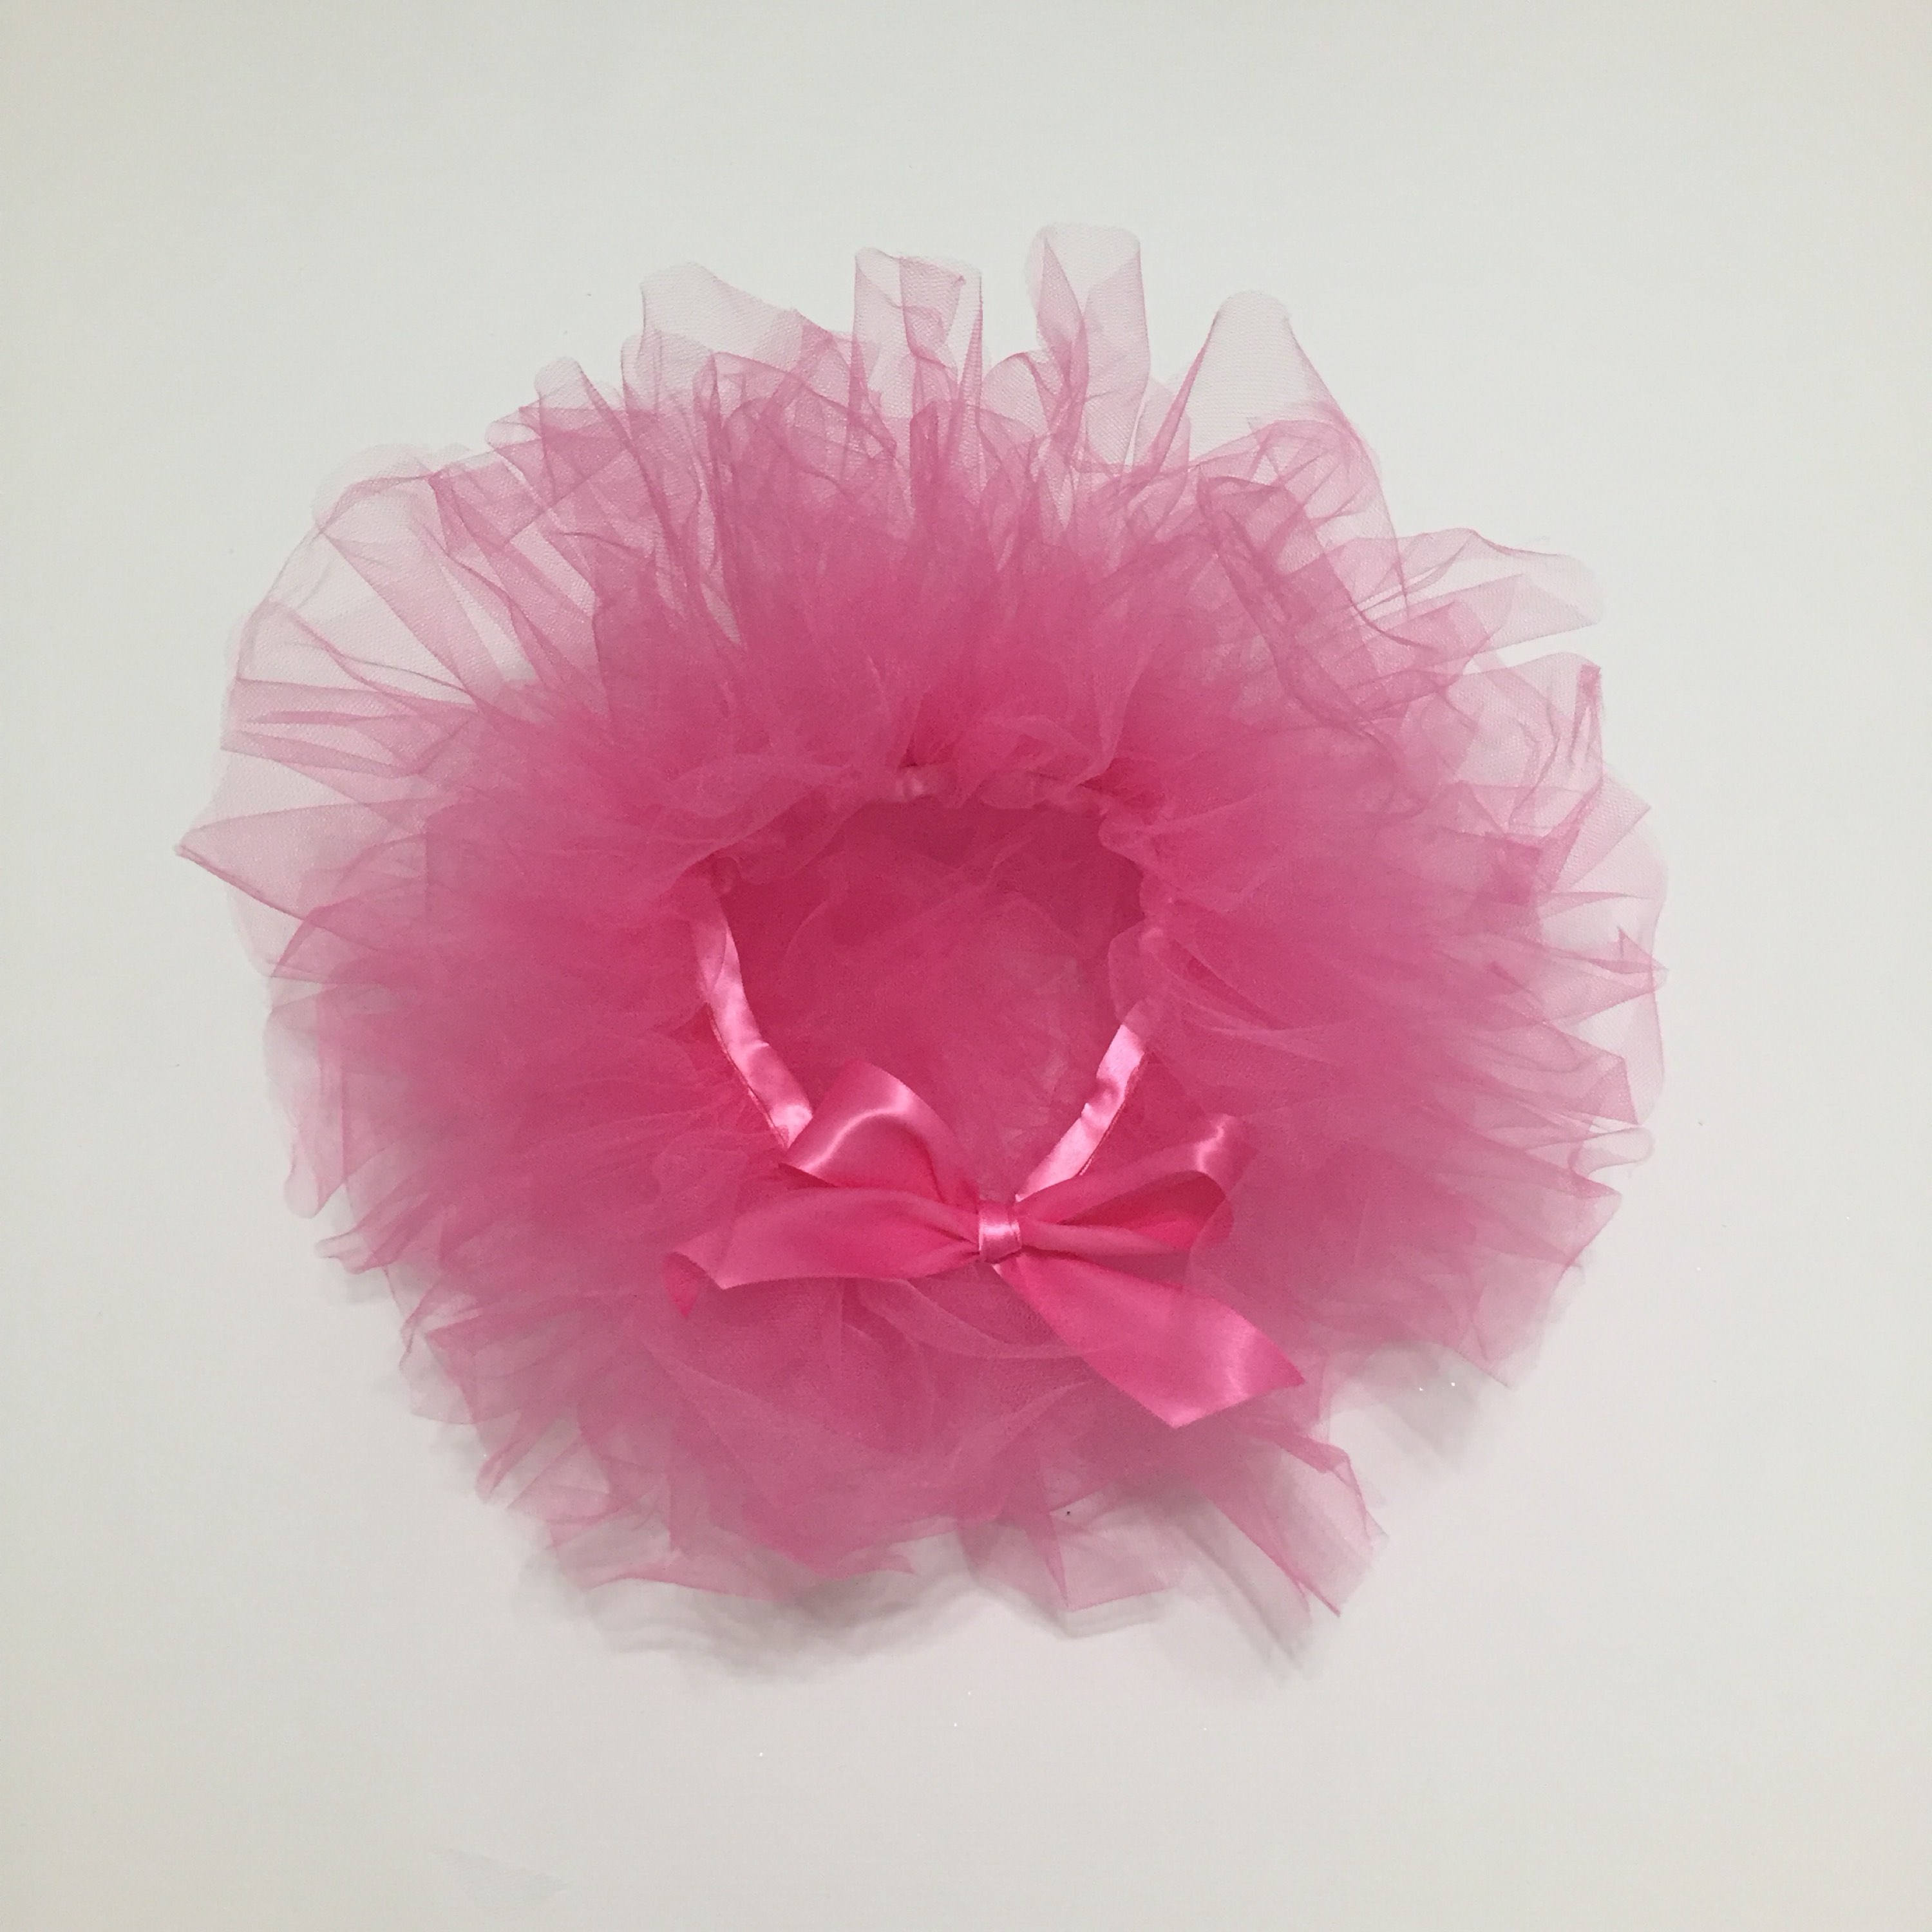 Candy Pink Tutu First Birthday Cake Smash Photo Prop Outfit Baby Toddler Child Fairy Princess Ballet Halloween Costume Handmade Tulle Skirt